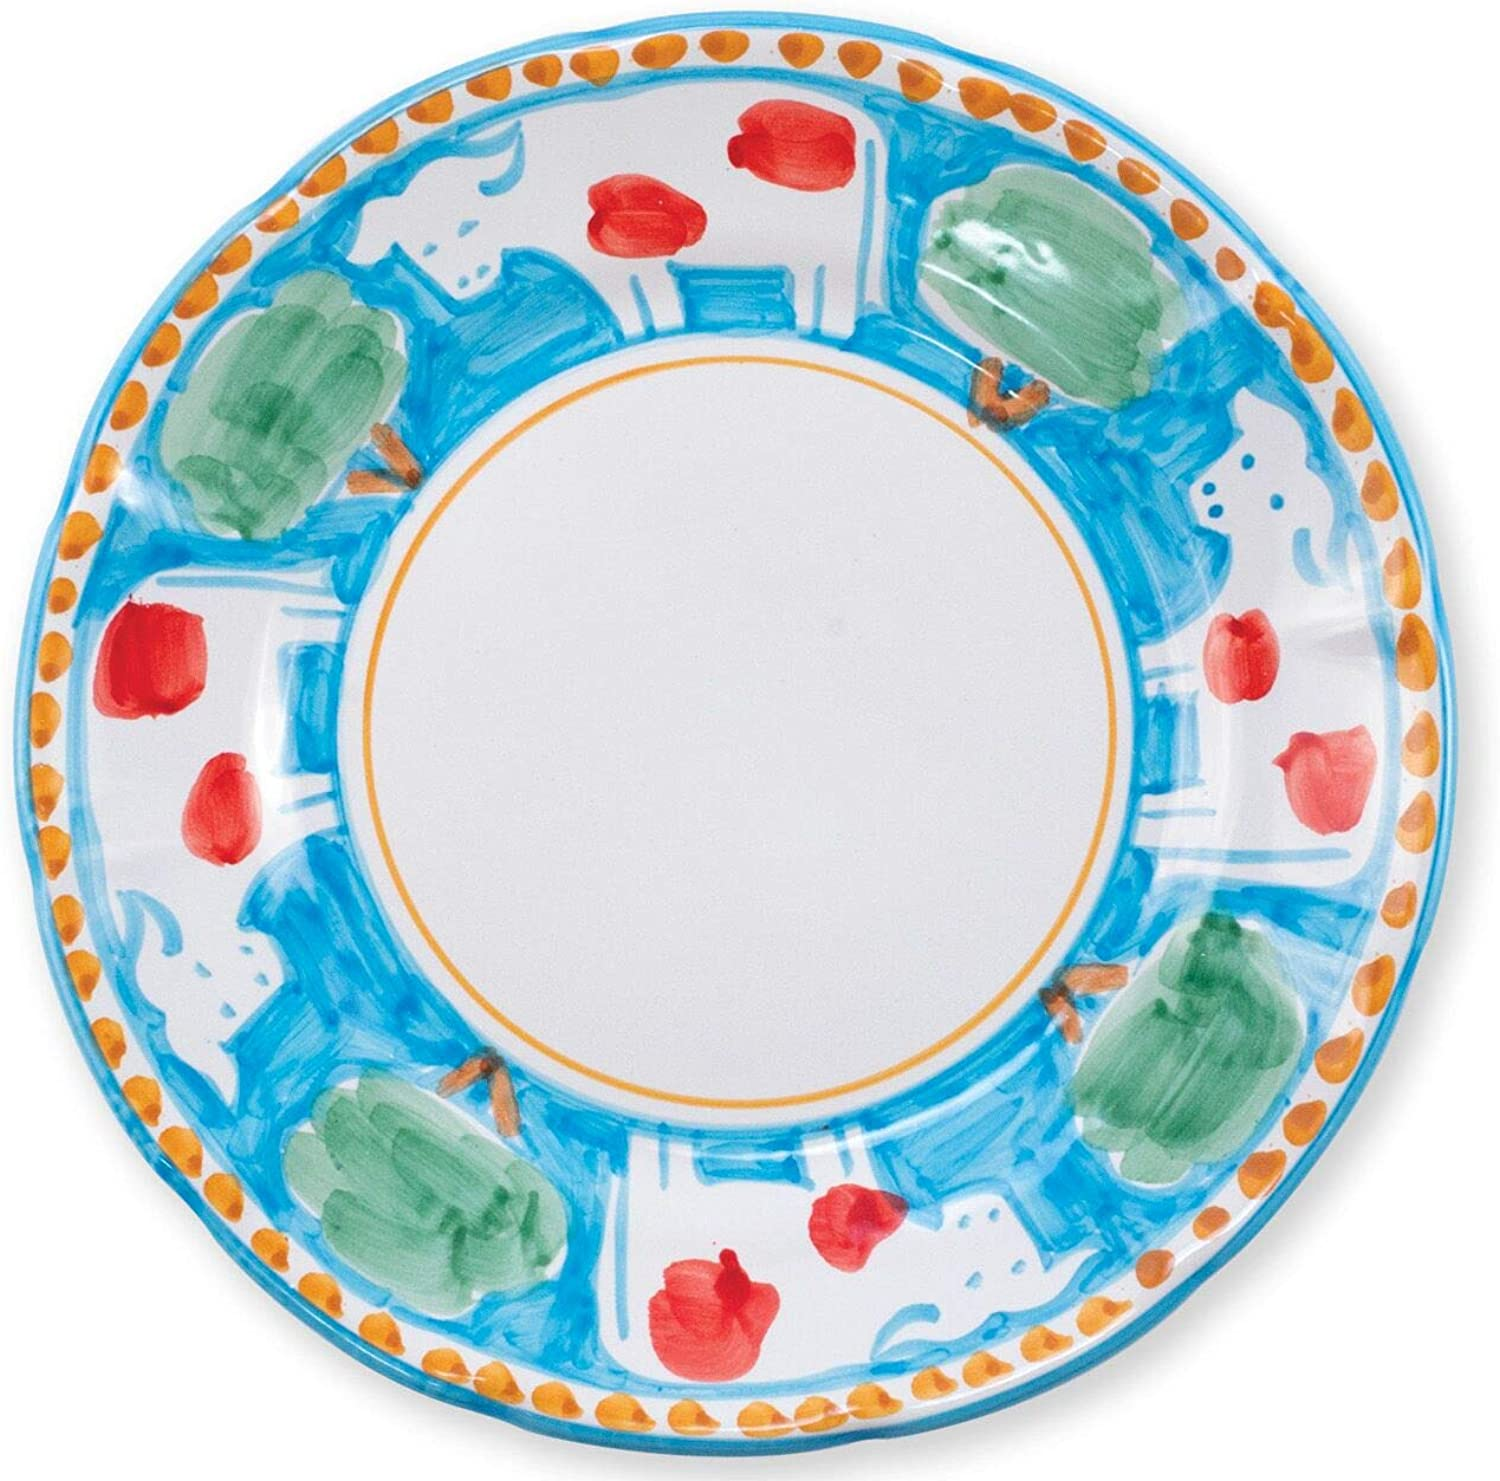 Vietri Mucca Dinner Plate - Campagna Collection